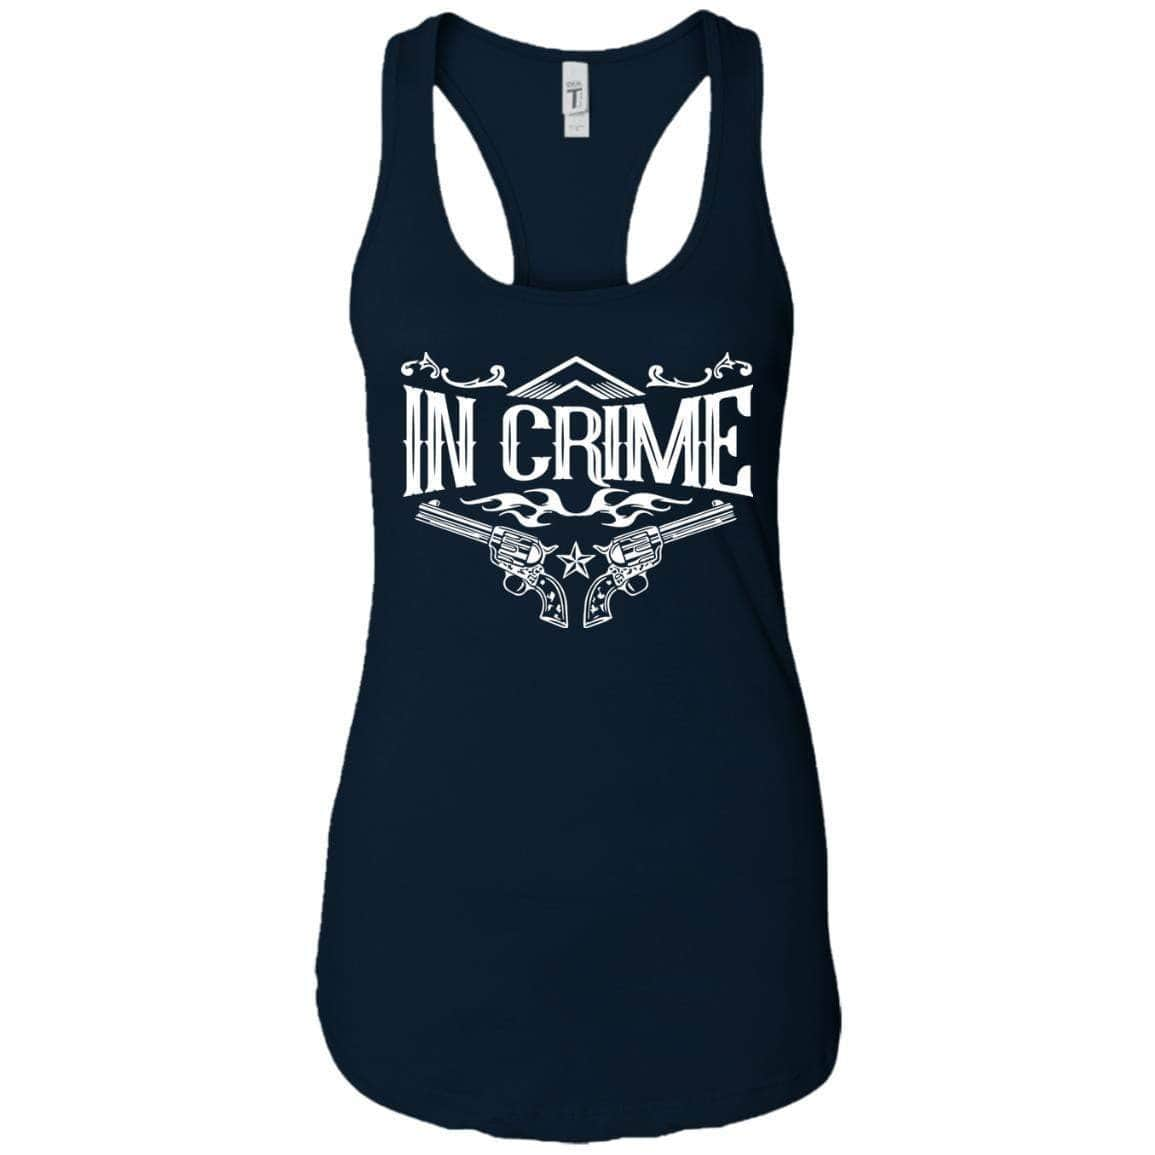 In Crime Women's Racerback Tank